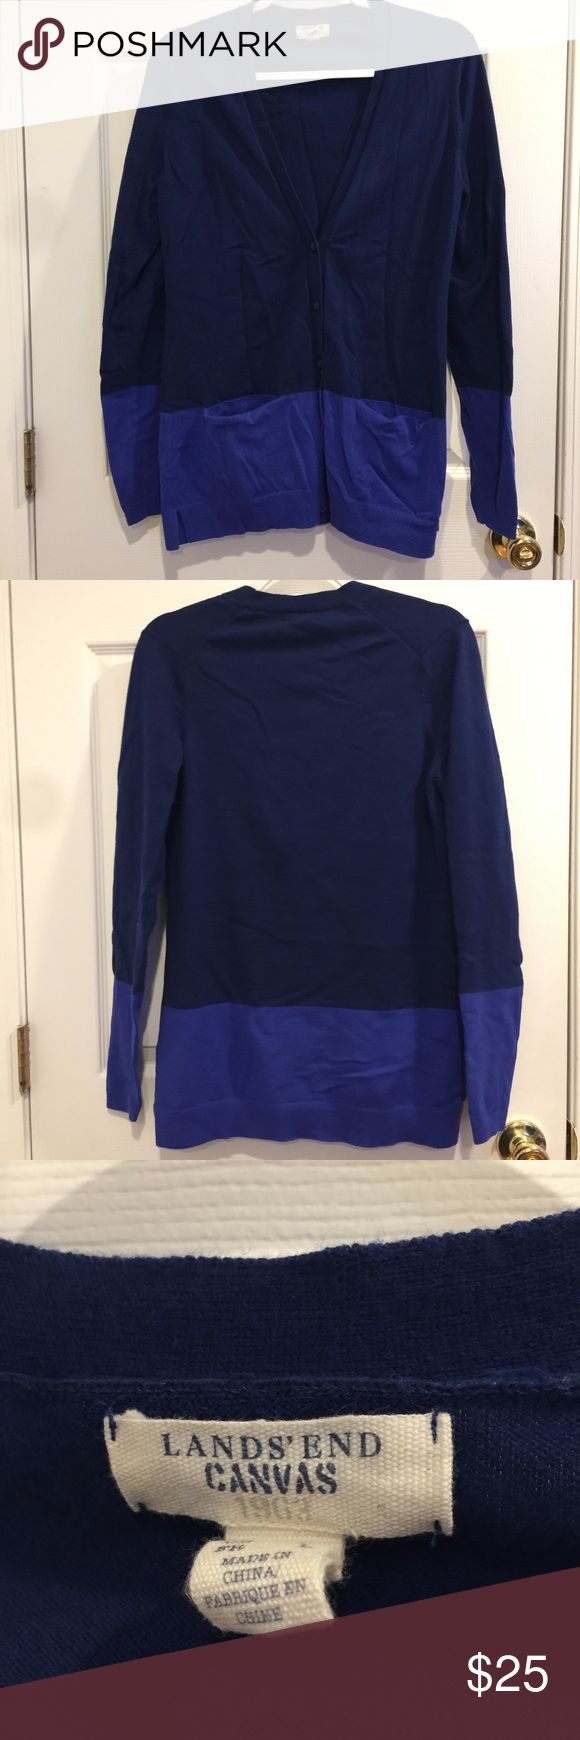 💕SALE💕Lands' End Cardigan Size medium royal and navy blue cardigan. Brand is Lands' End. Has pockets on the front. It's a thicker cardigan so it will keep you warm. No flaws, just a little wrinkled from being stored away. Great condition! Lands' End Sweaters Cardigans